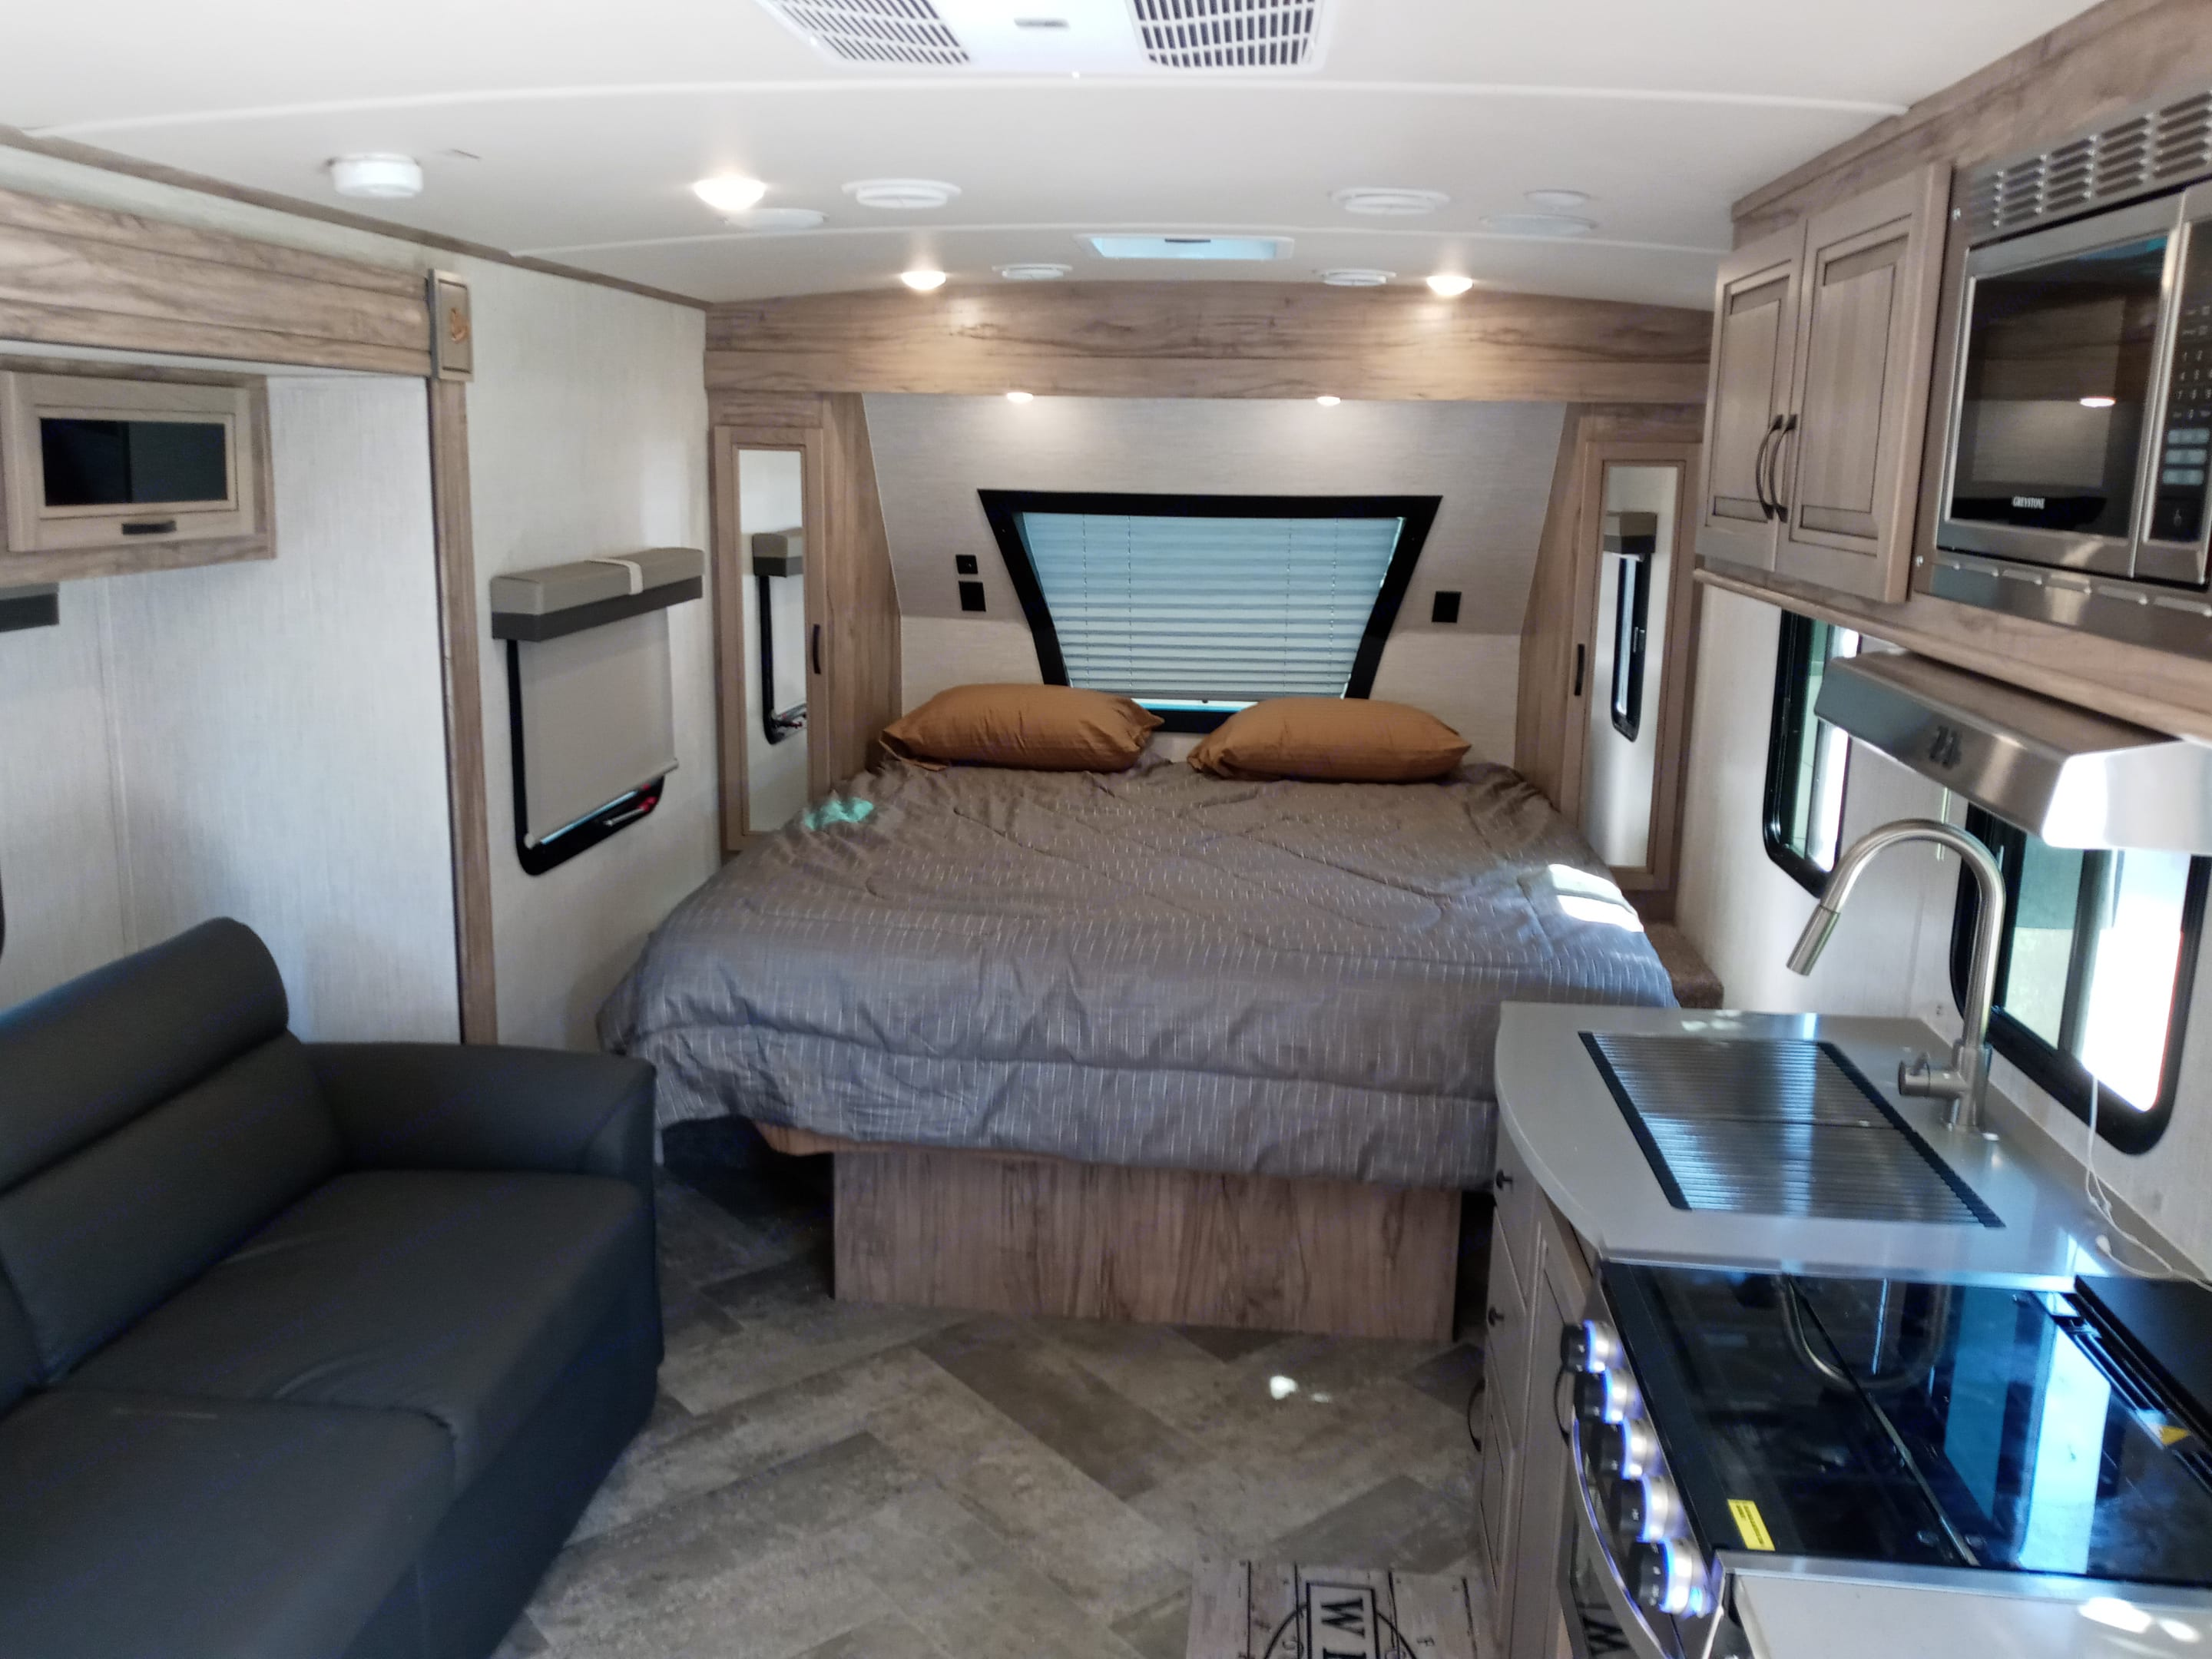 This is an RV King bed that is 70 inches wide. Plenty of room and walk around, no climbing over your partner to get out of bed. . Forest River Palomino Solaire 205ss 2021